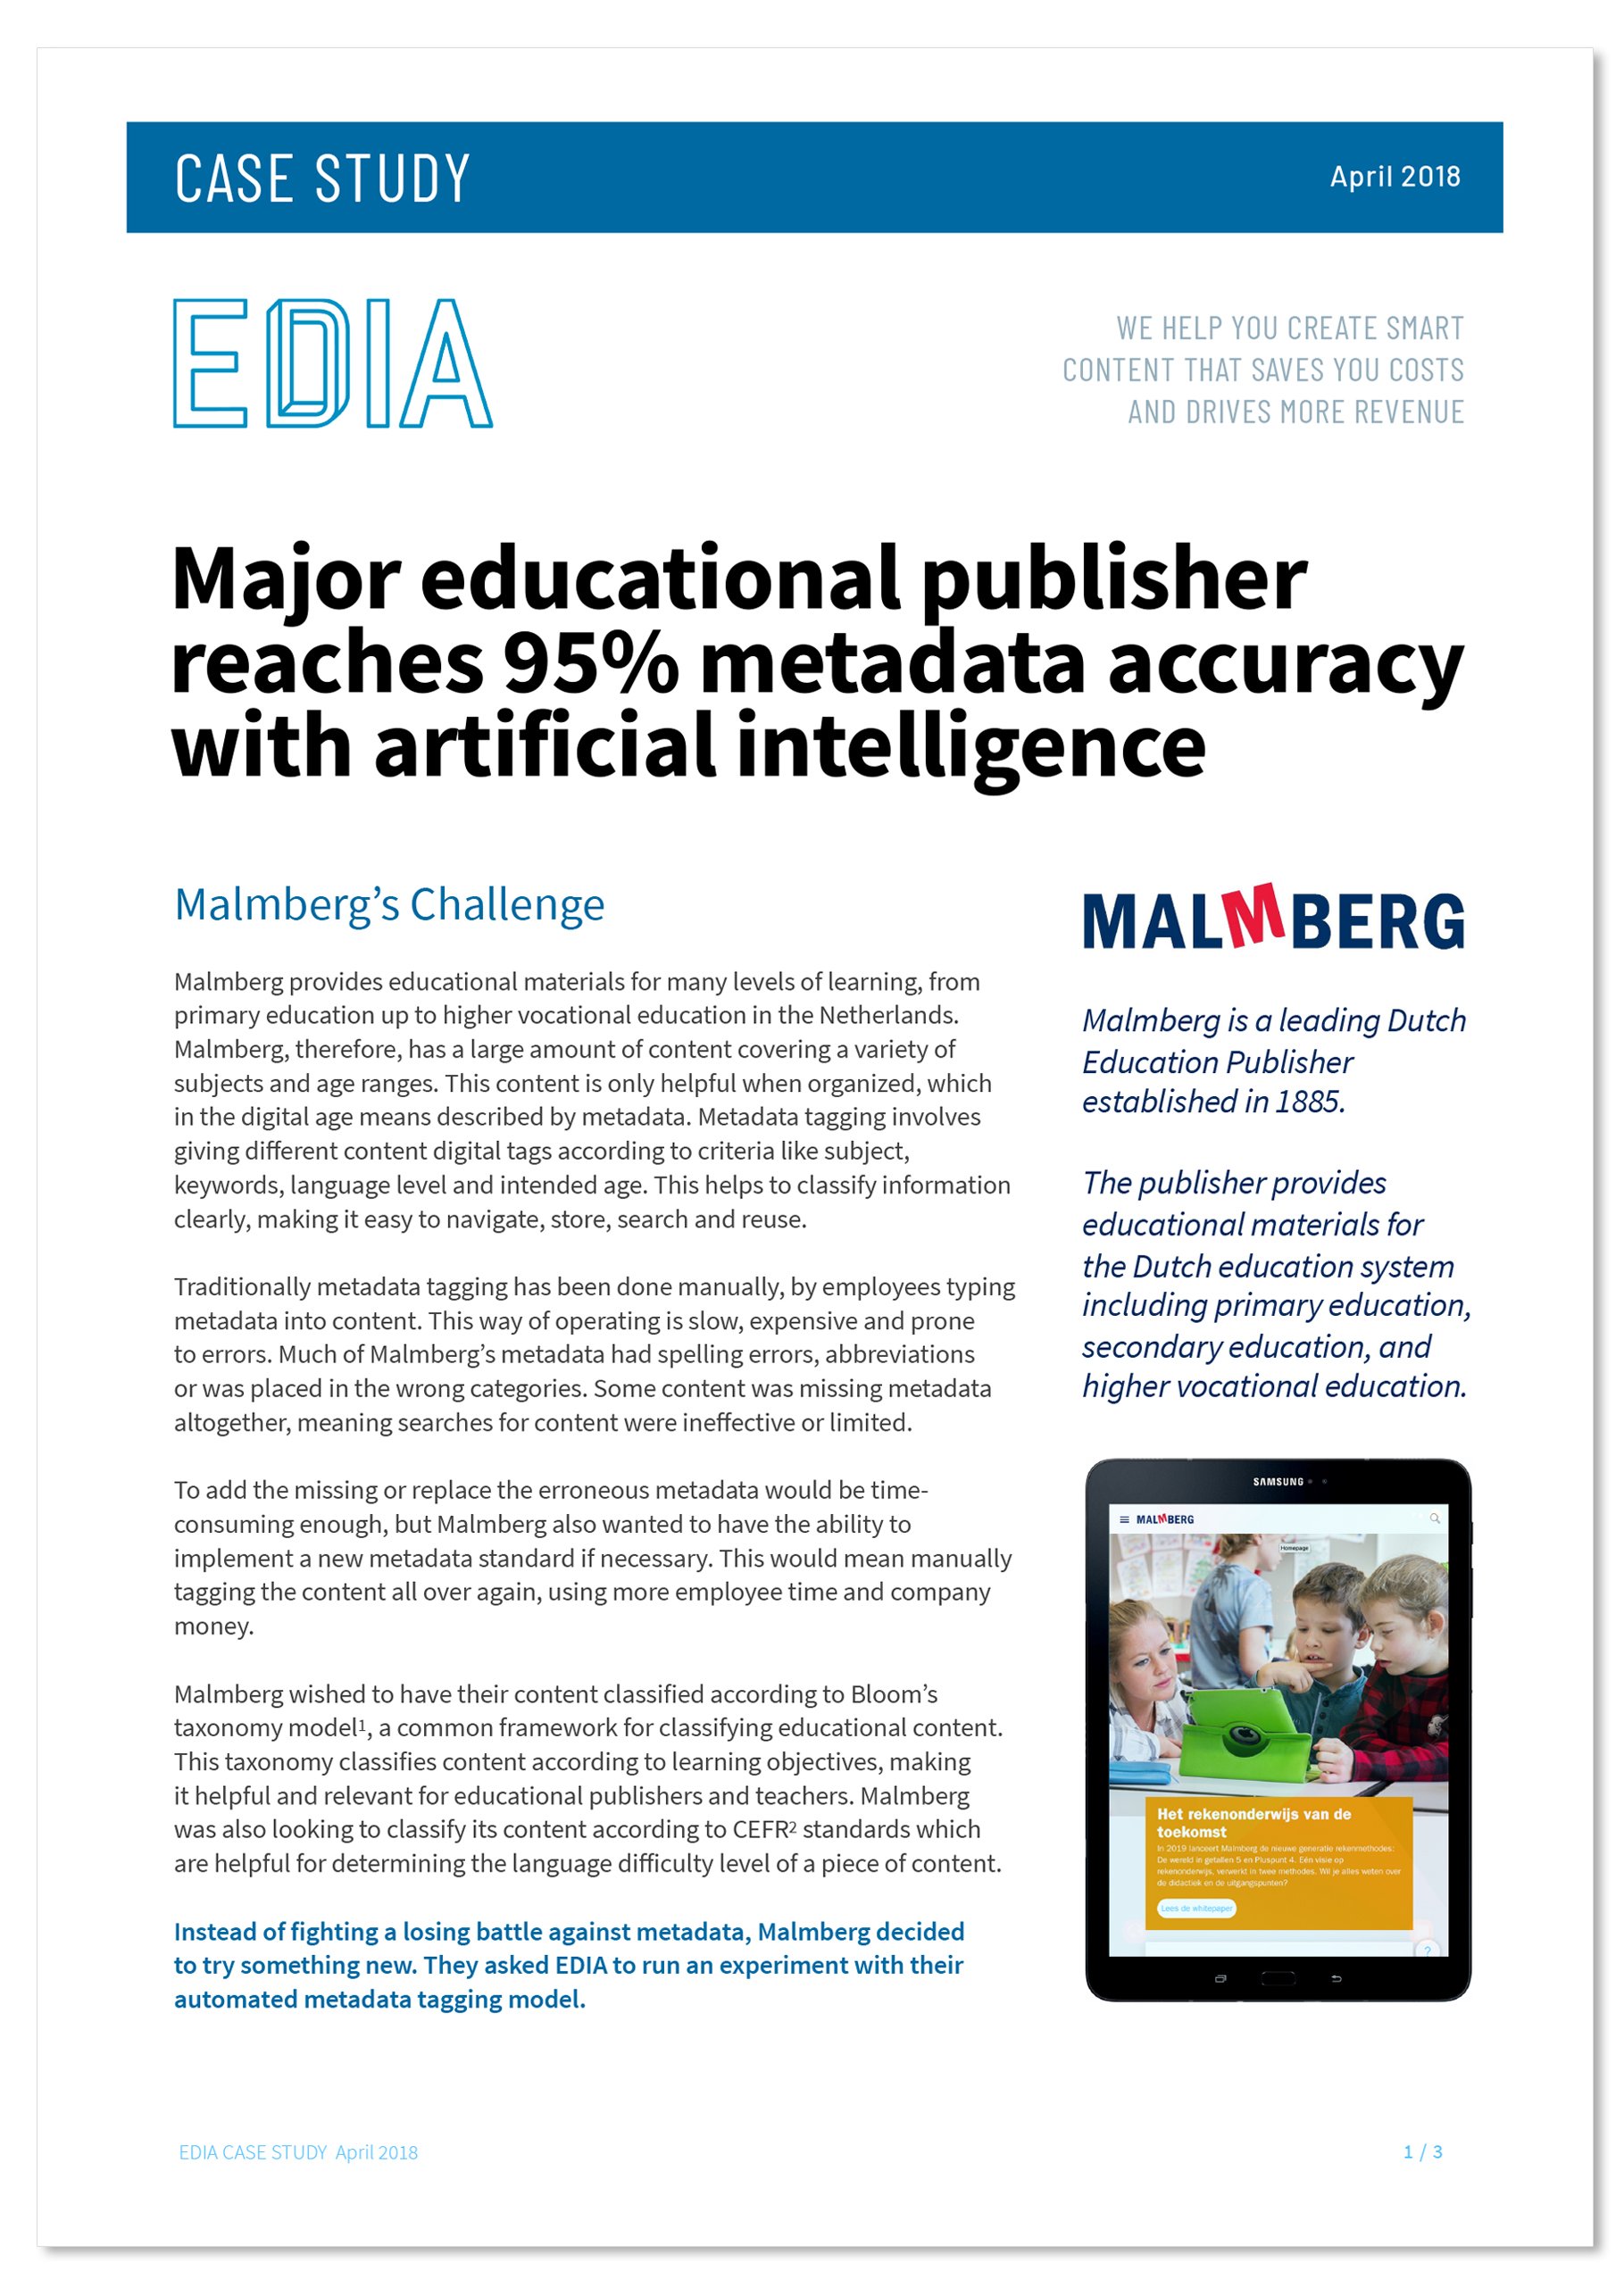 Malmberg casestudy for website link.jpg